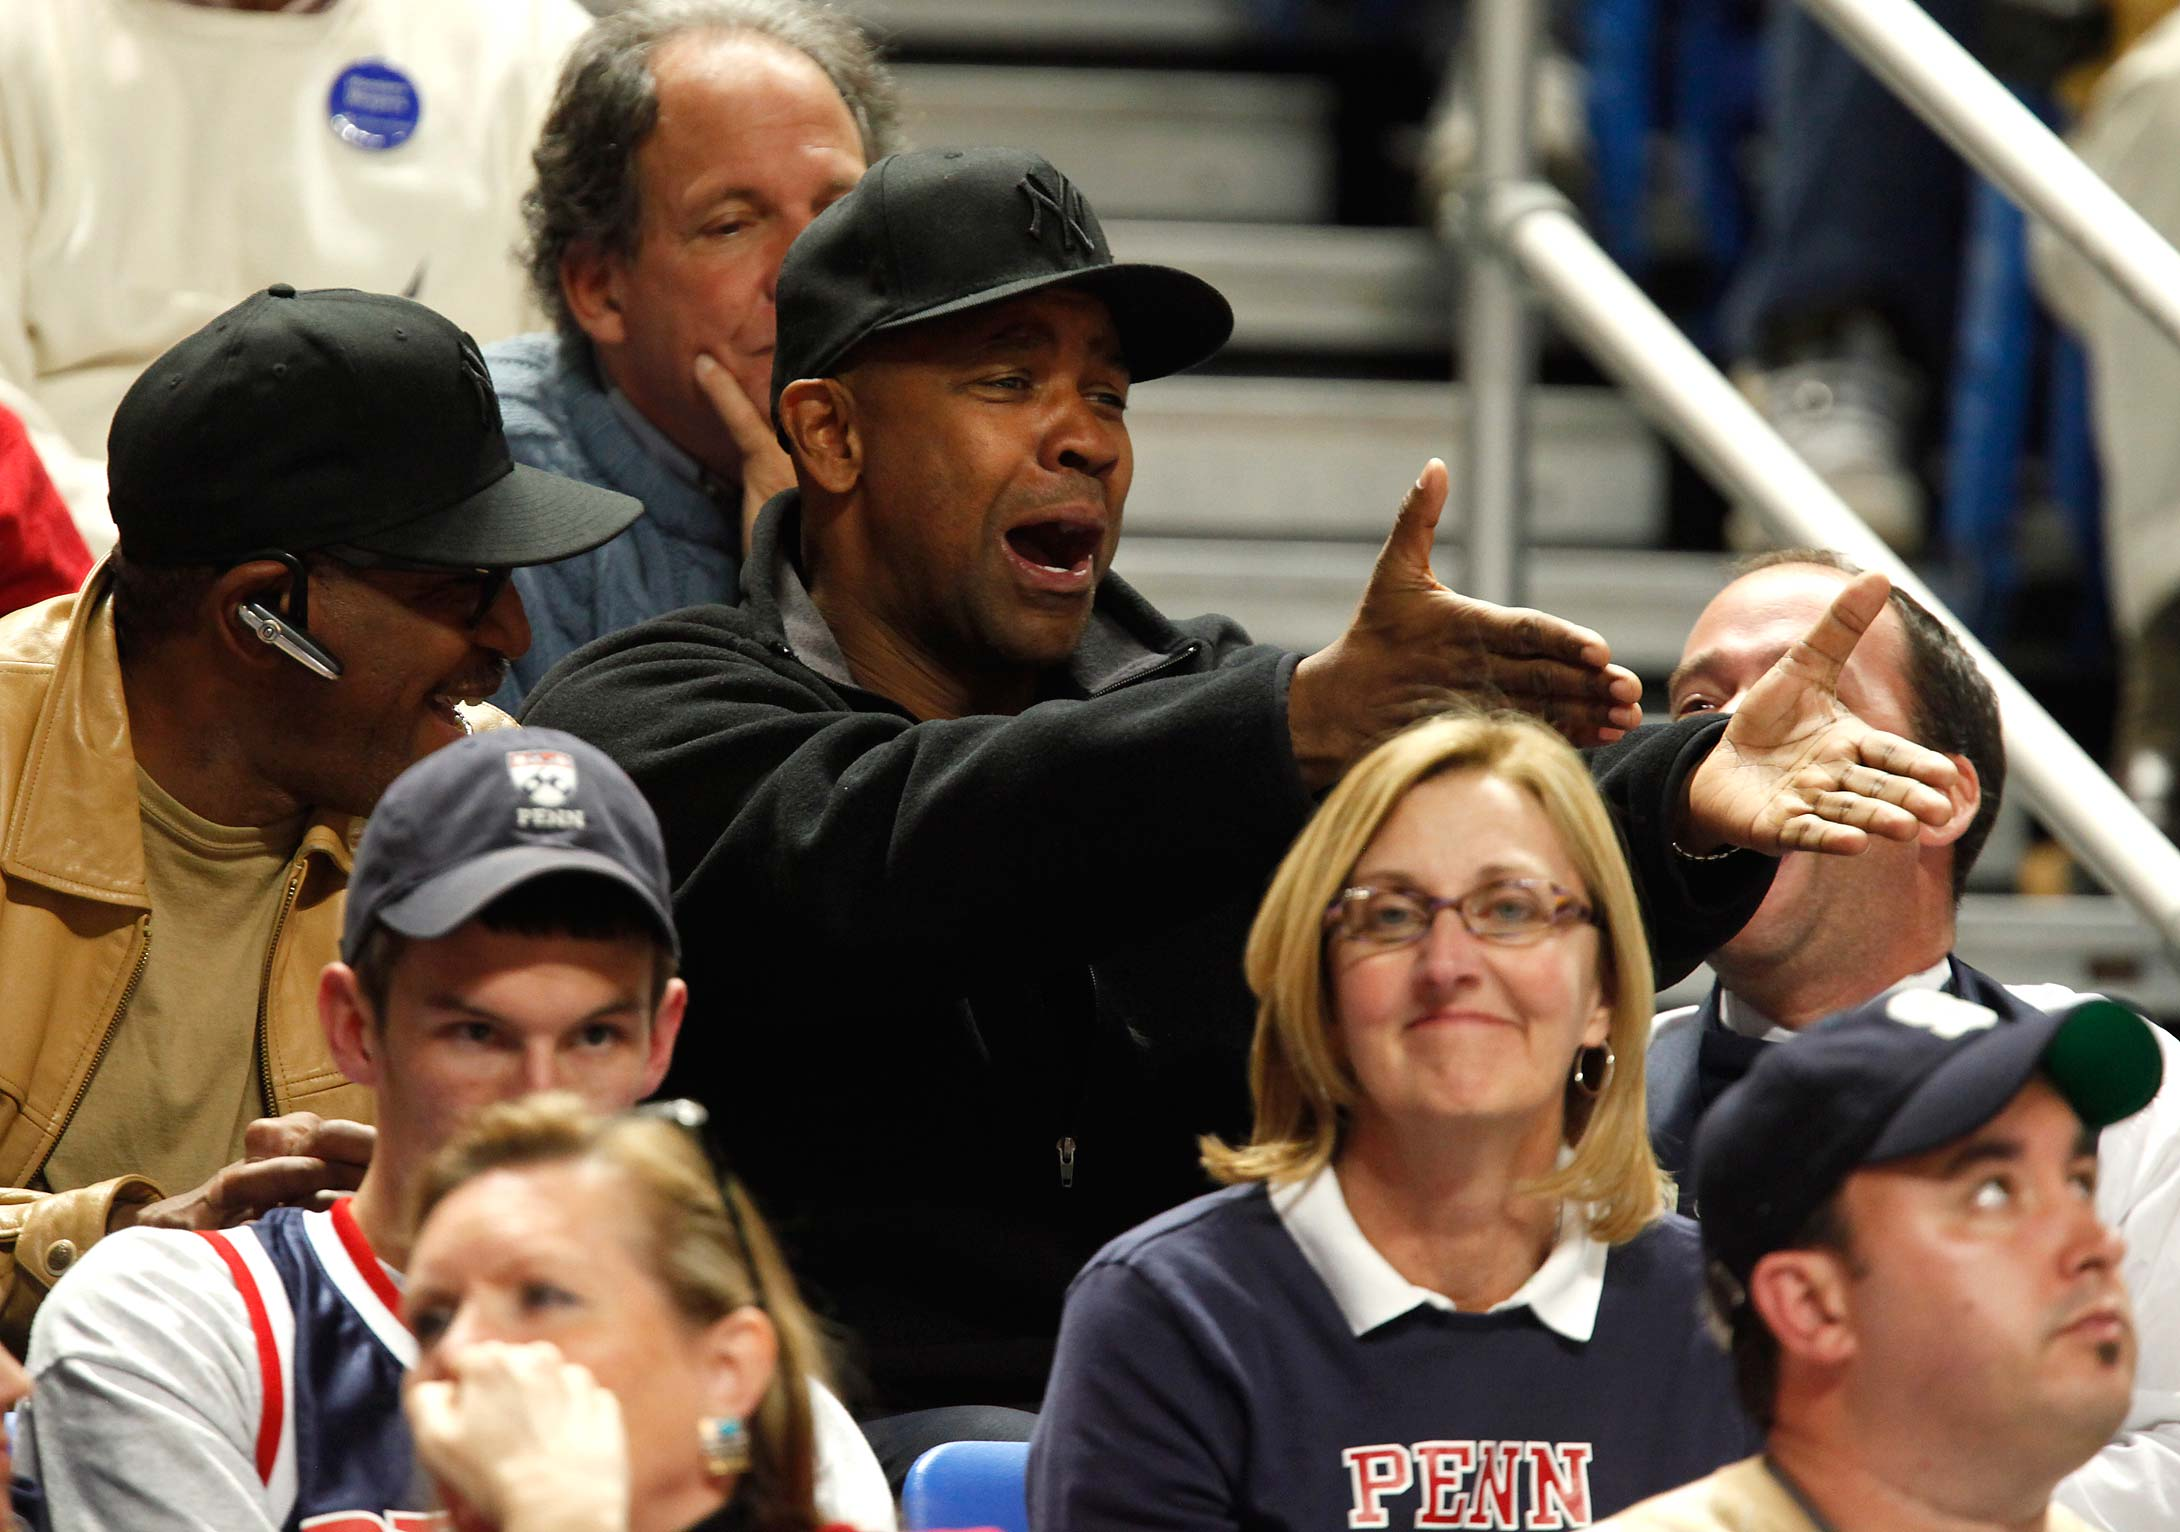 Denzel Washington reacts as he watches Penn play Penn State in State College, Pa., in 2009. Washington's son Malcolm played at Penn.